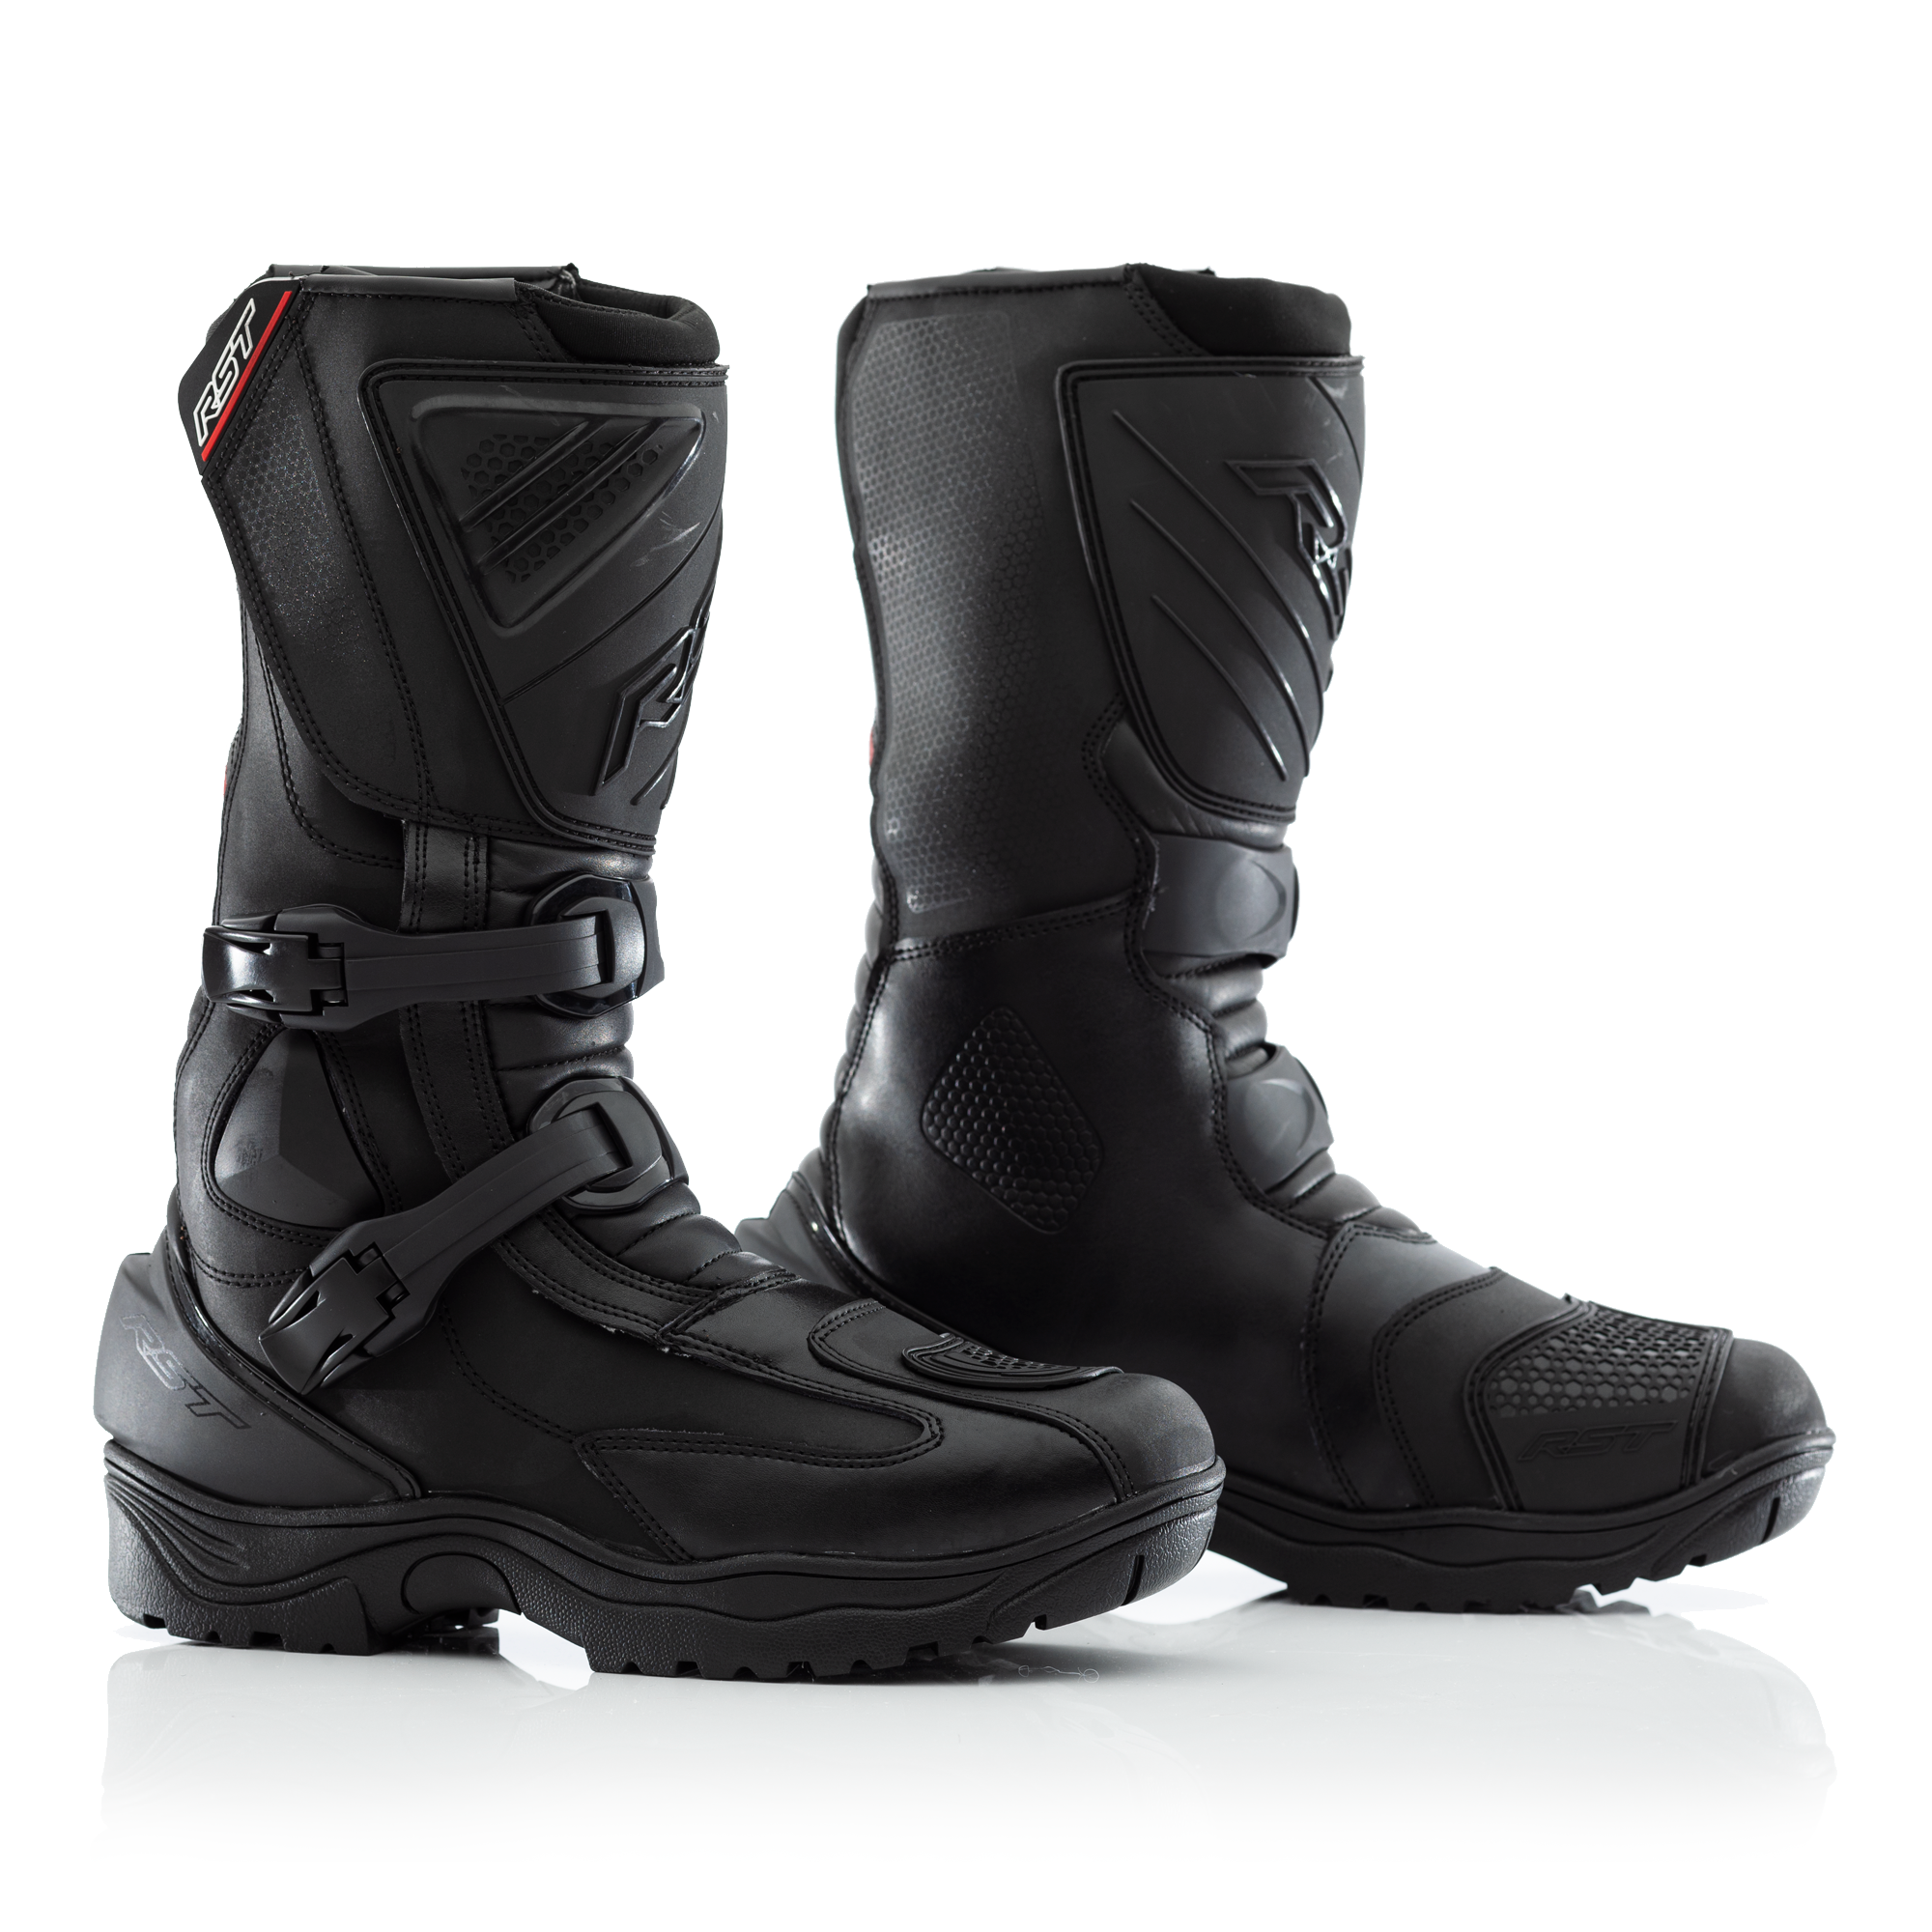 73f69b16c5f RST Adventure 2 Waterproof Boots   FREE UK DELIVERY